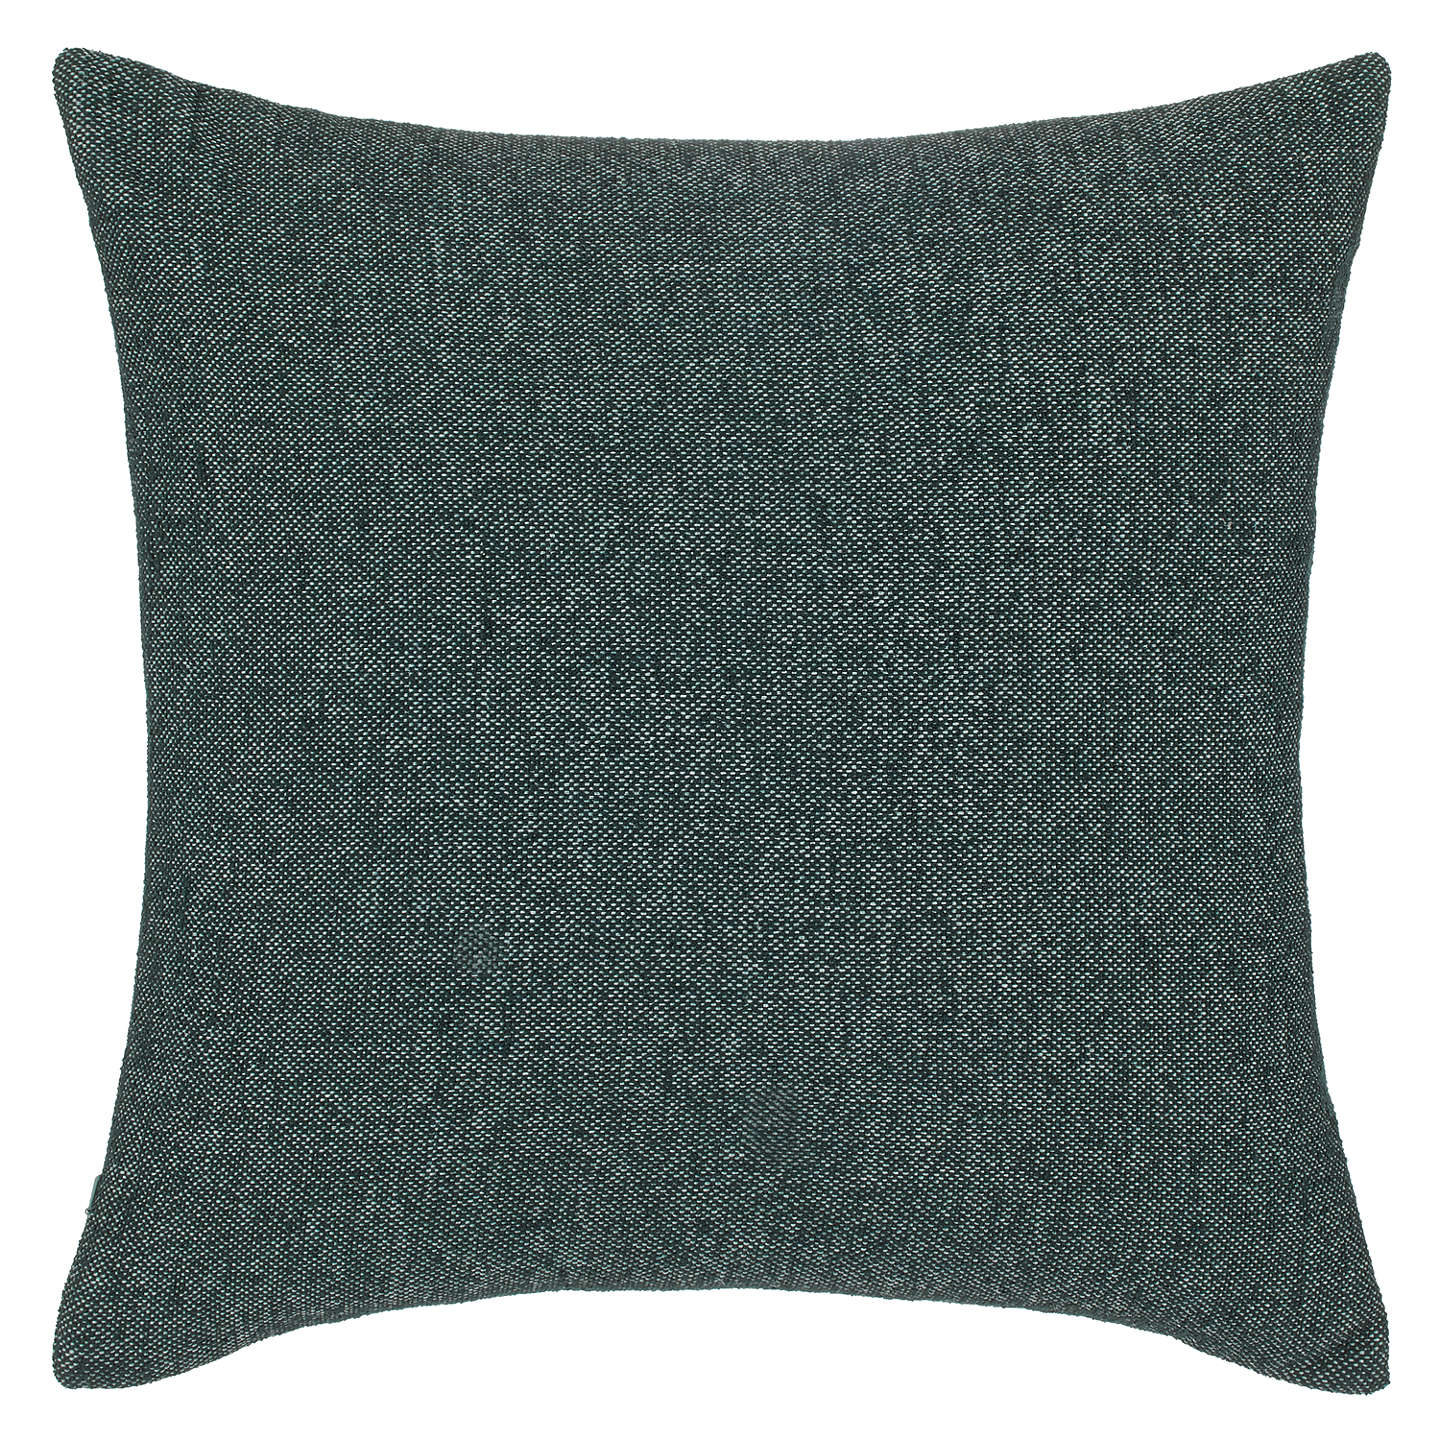 BuyDesign Project by John Lewis No.033 Cushion, Evergreen Online at johnlewis.com